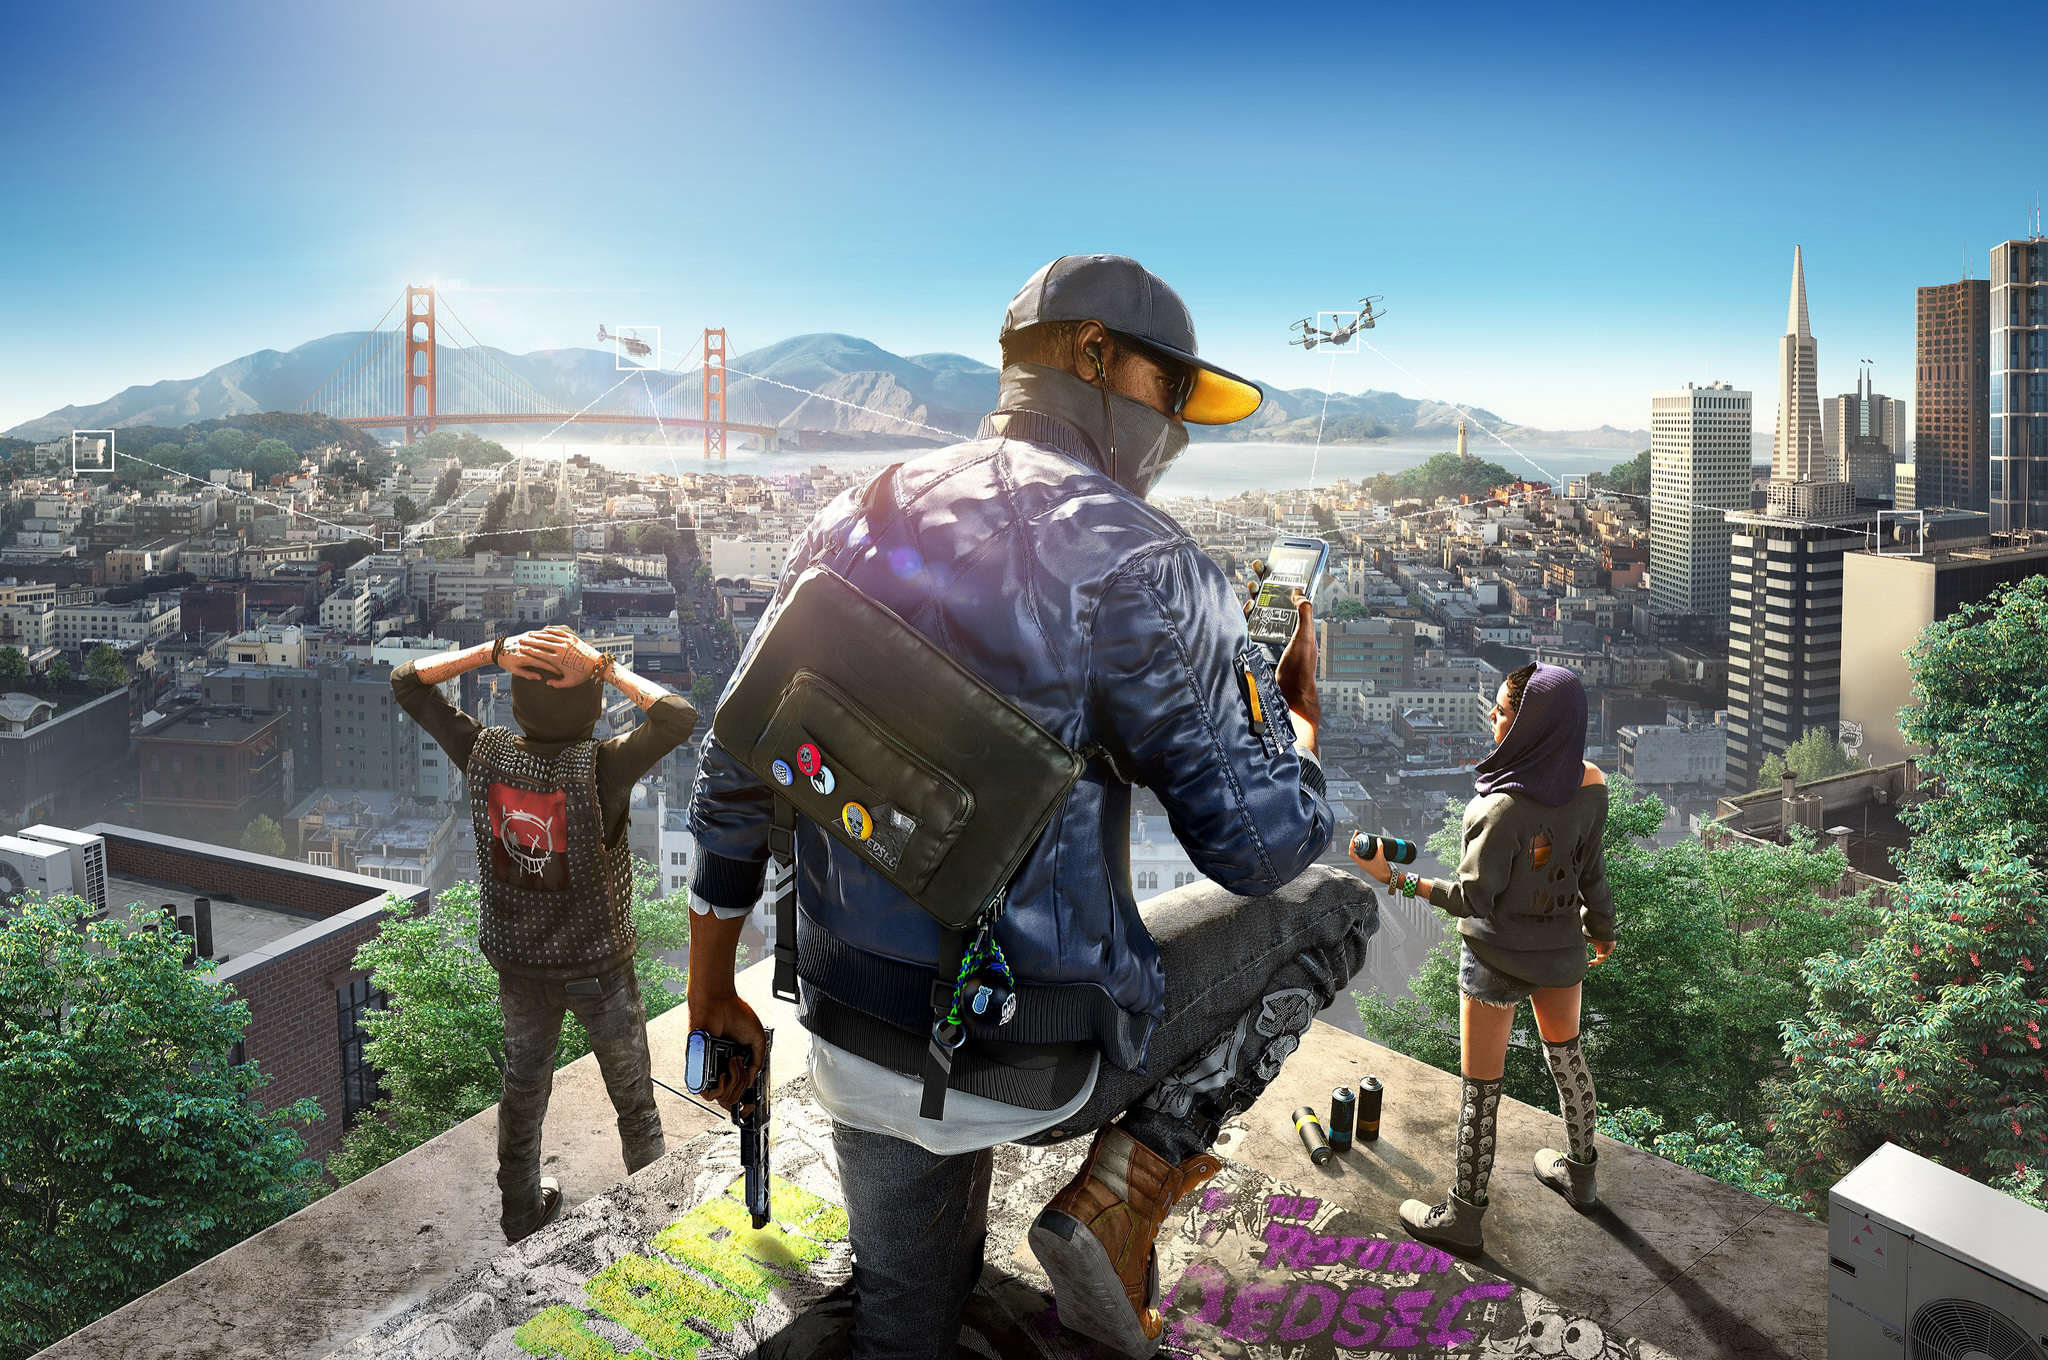 Watch Dogs 2 Livestream Reveals Tons Of New Story And Gameplay Details 27430709642 f3a6942911 k